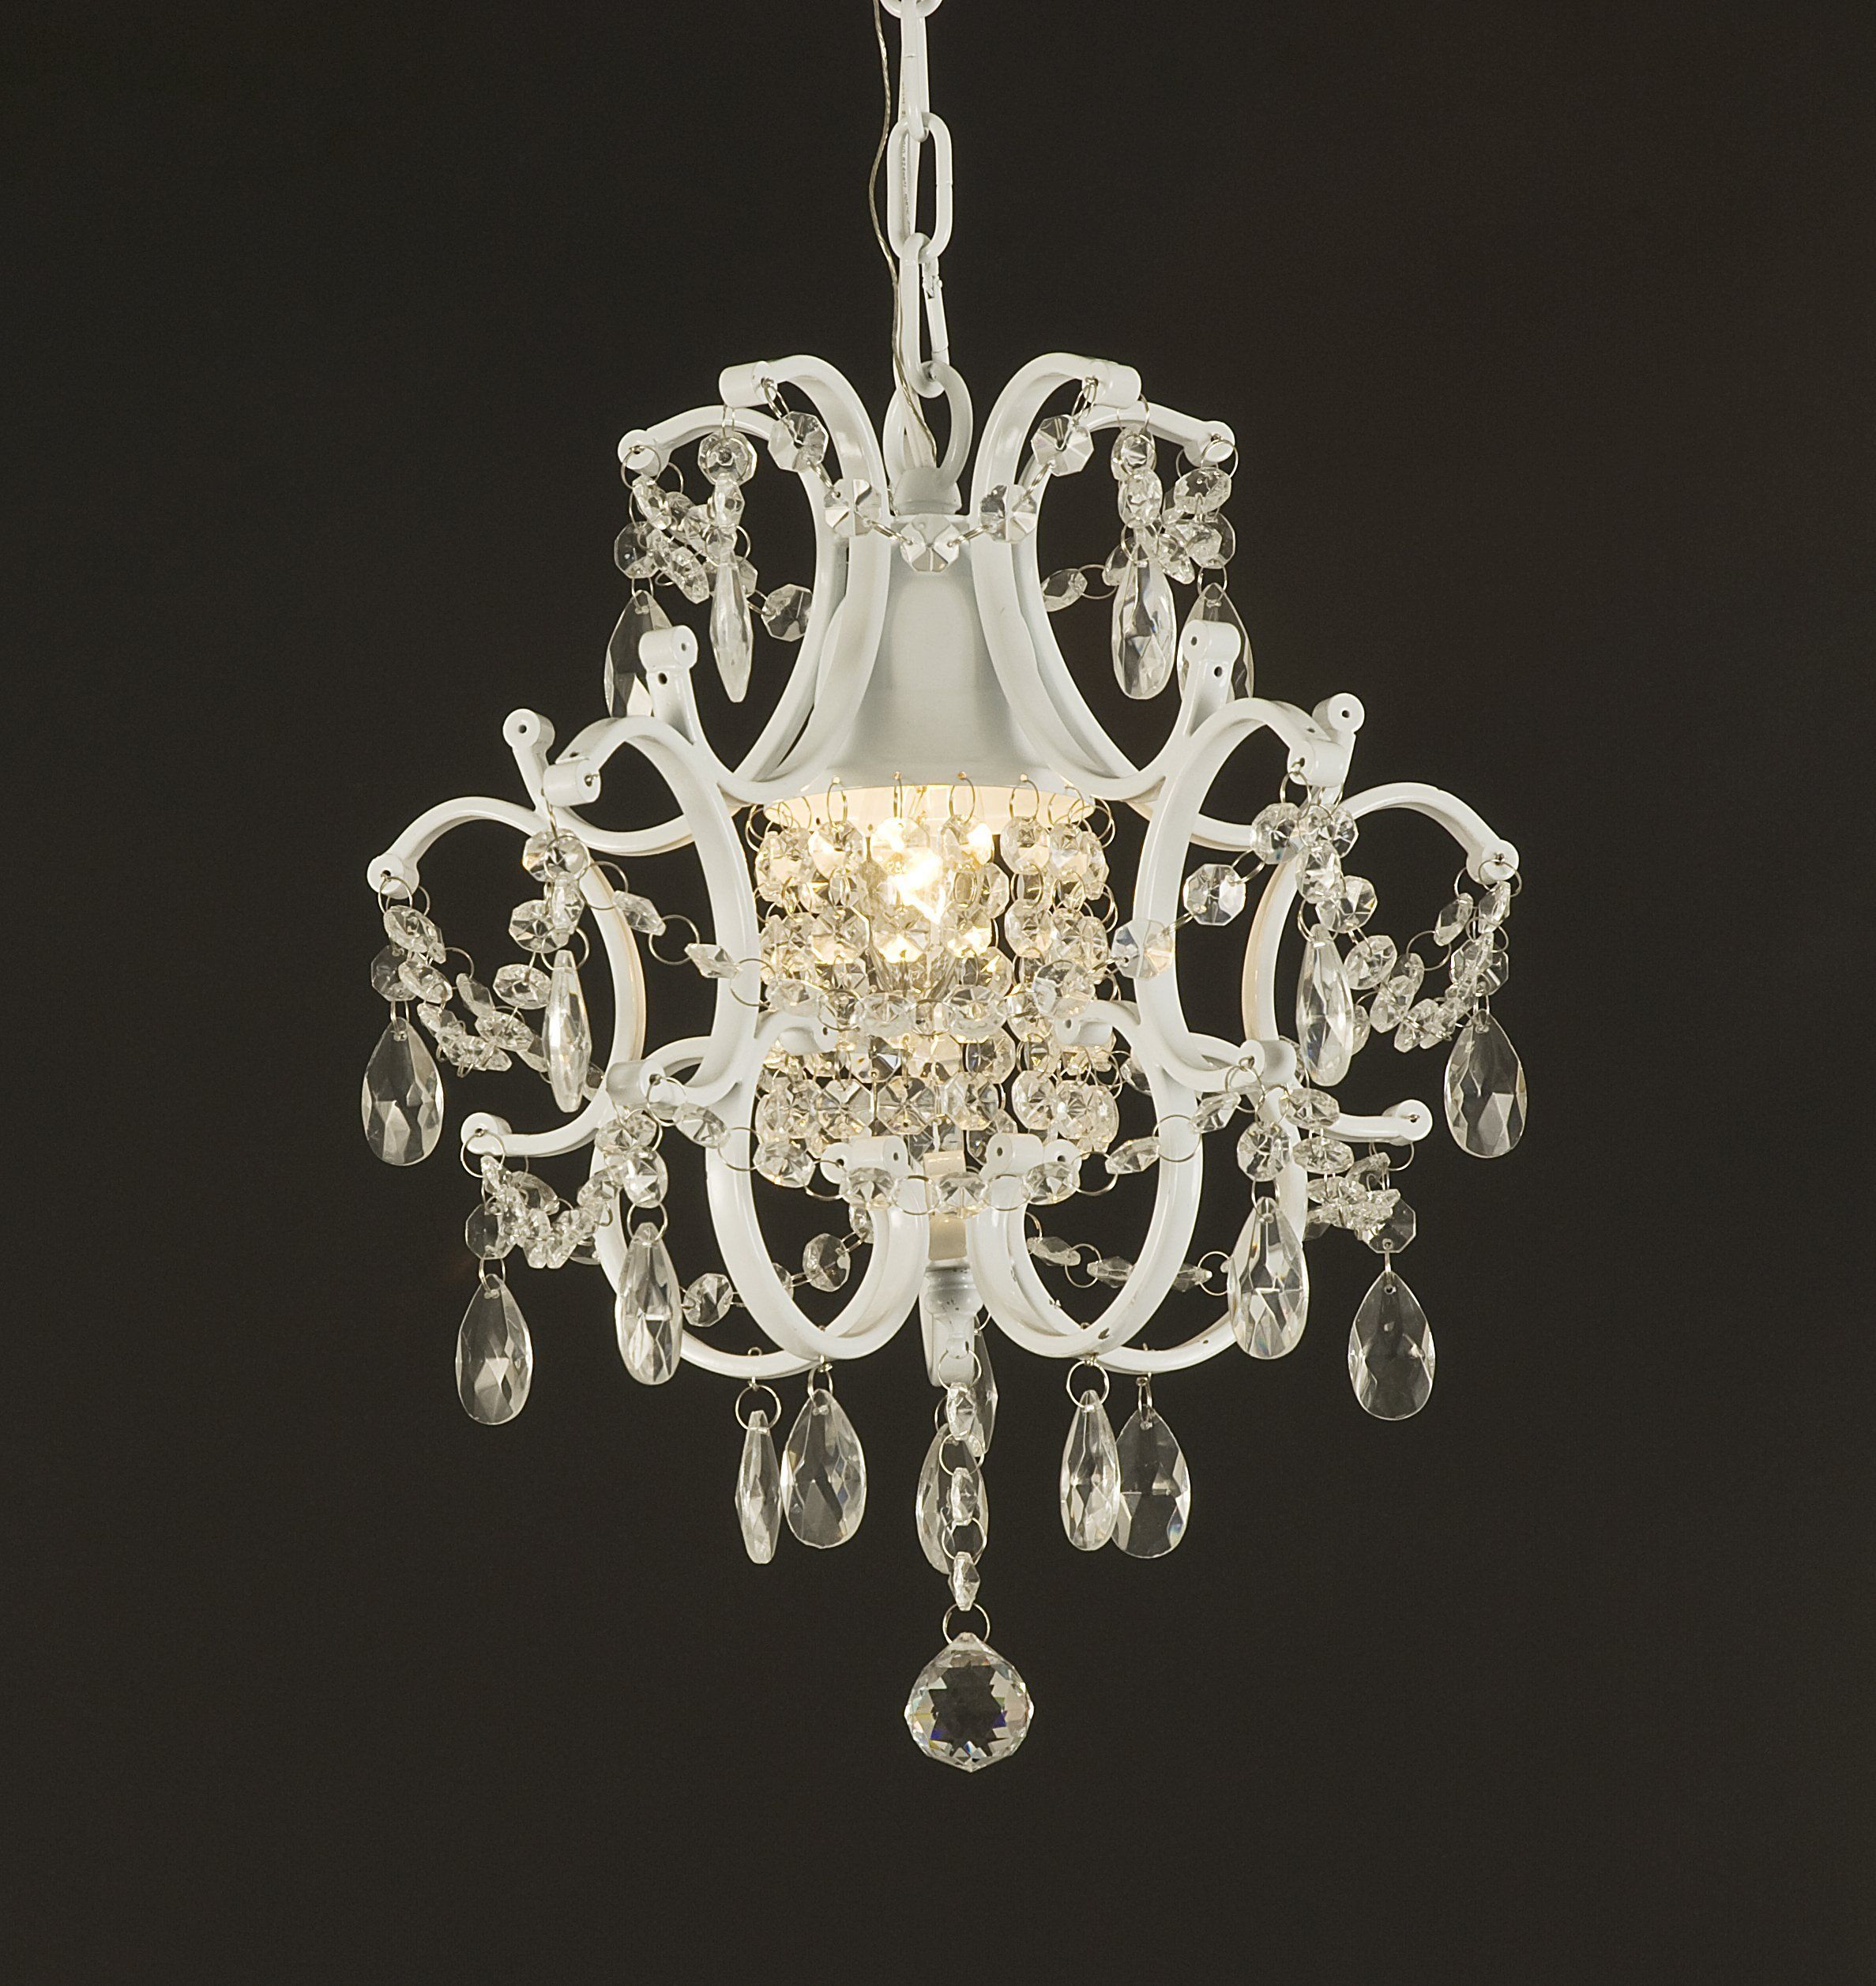 Wrought Iron Crystal Chandelier Lighting Country French White One Light Free Shipping Ceiling